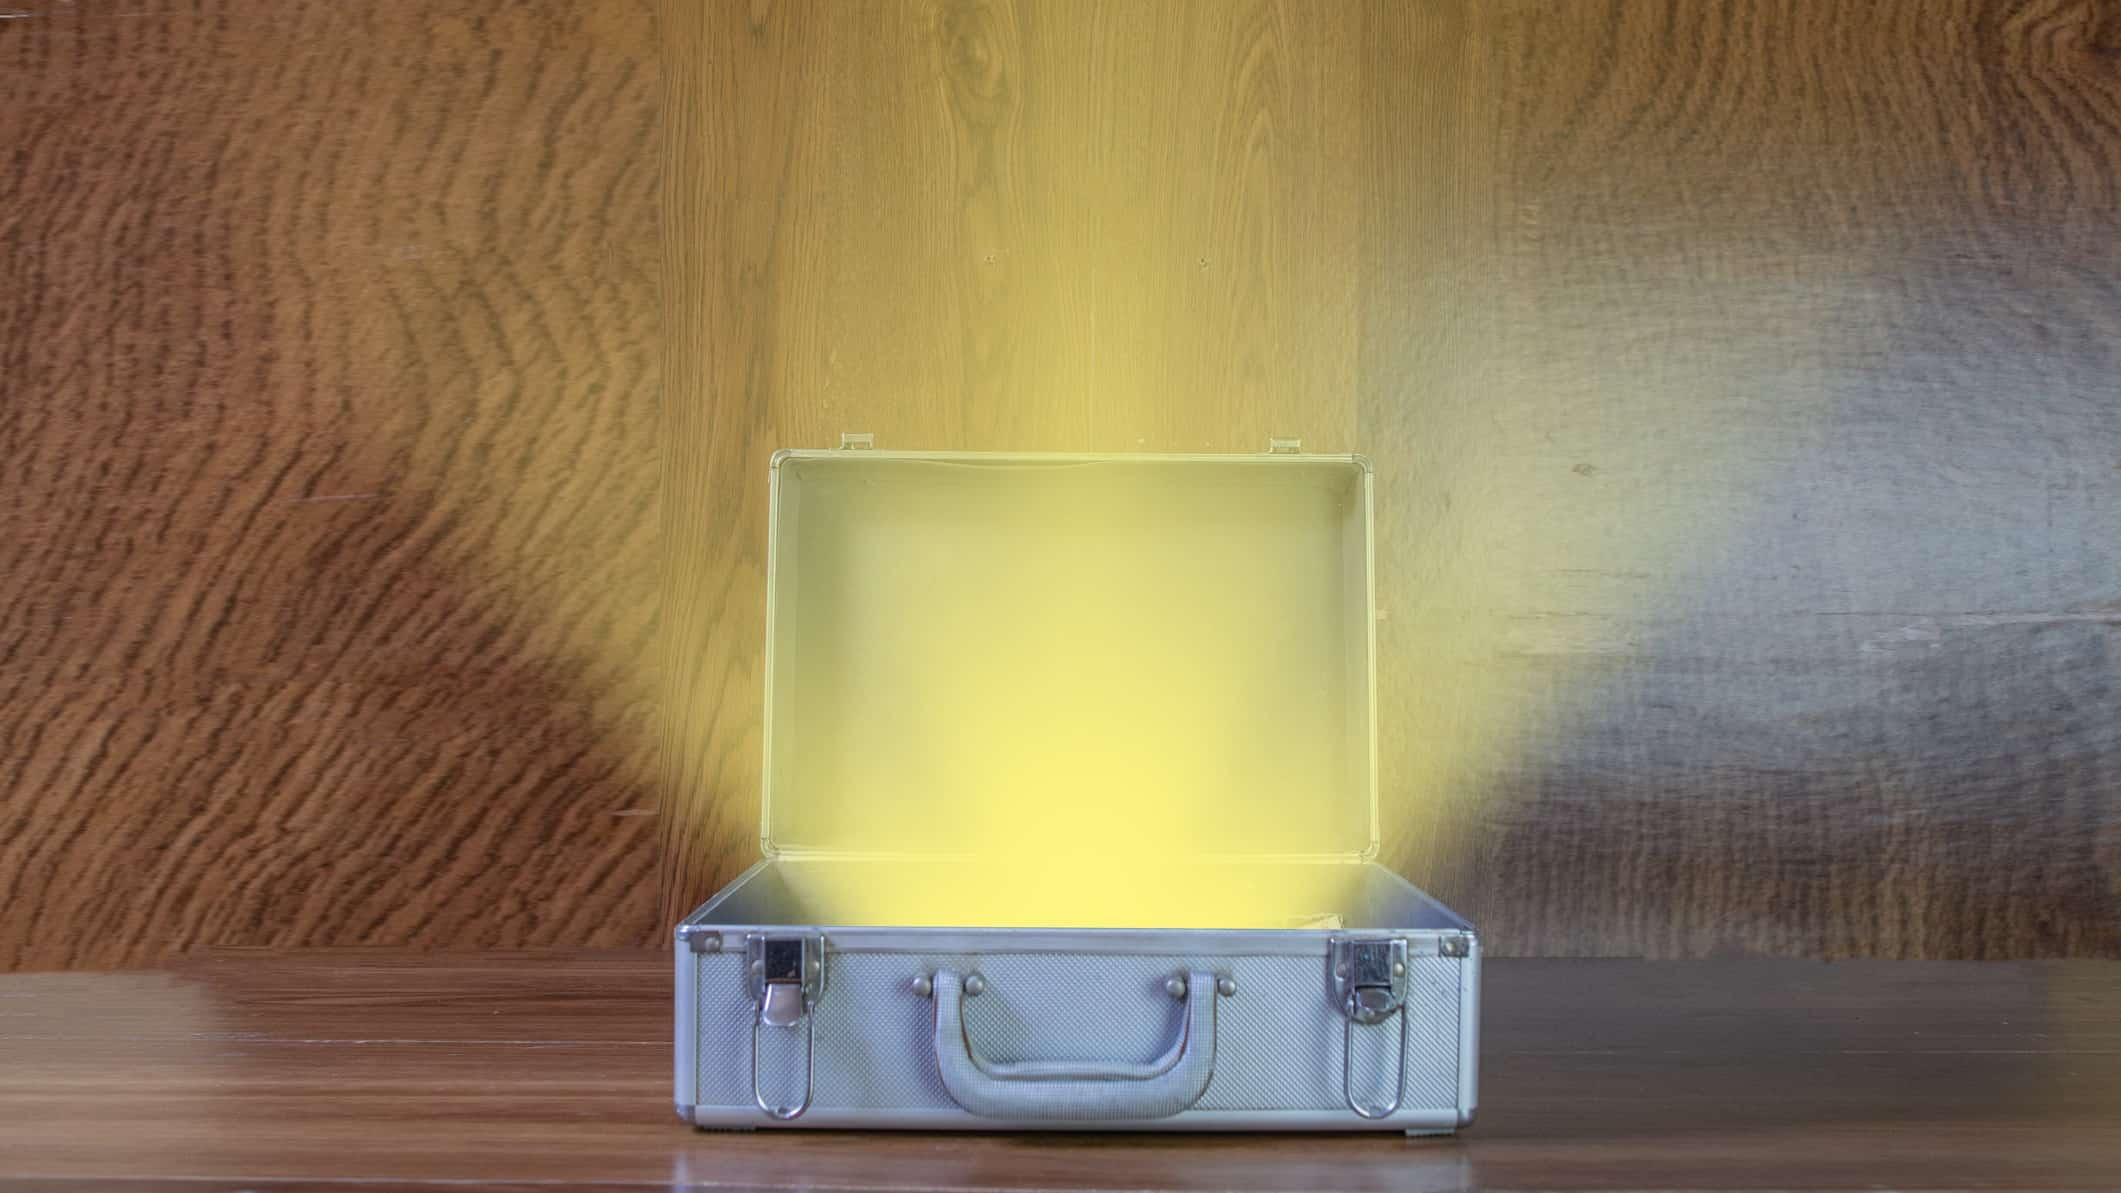 cheap stocks represented by open brief case with golden light shining from it